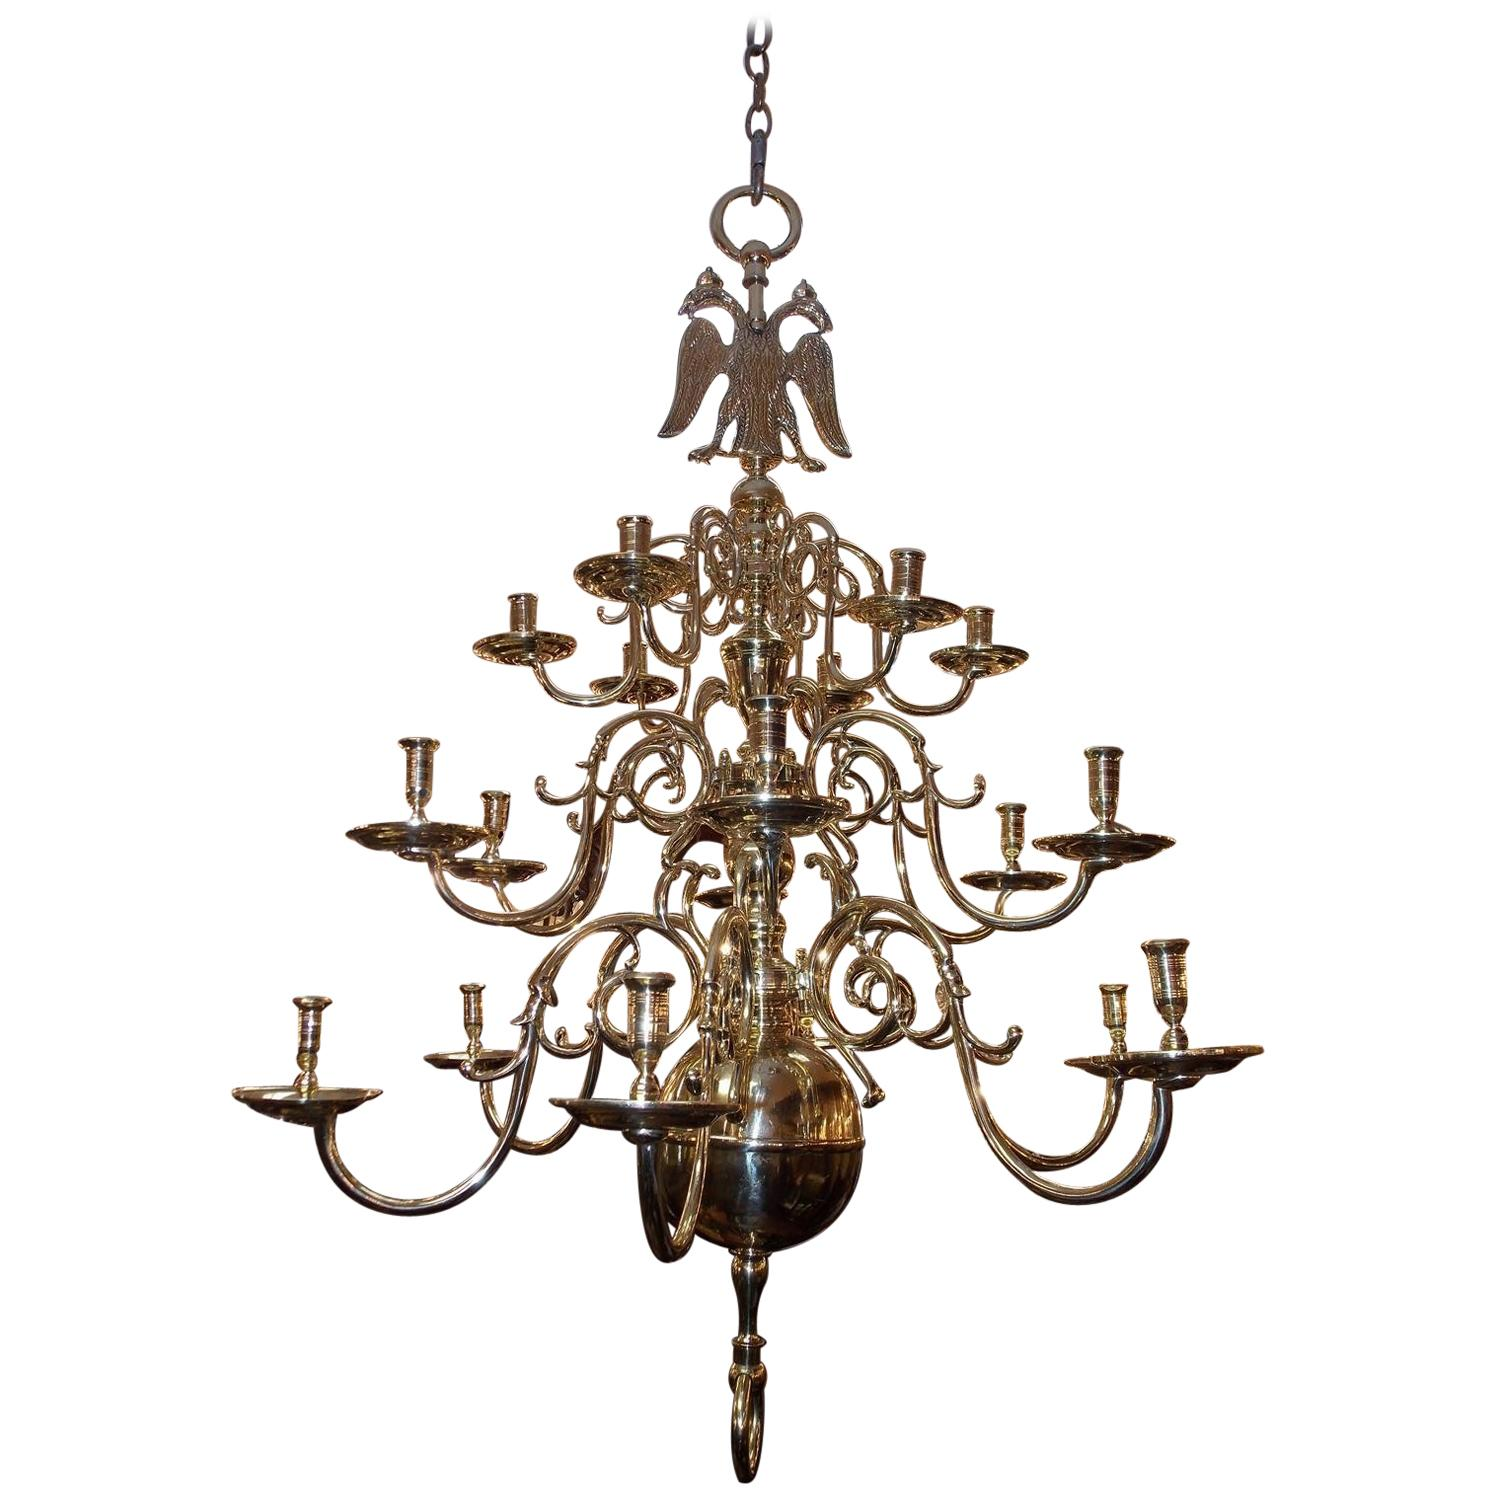 Dutch Colonial Brass Three-Tiered Bulbous Double Eagle Chandelier, Circa 1740